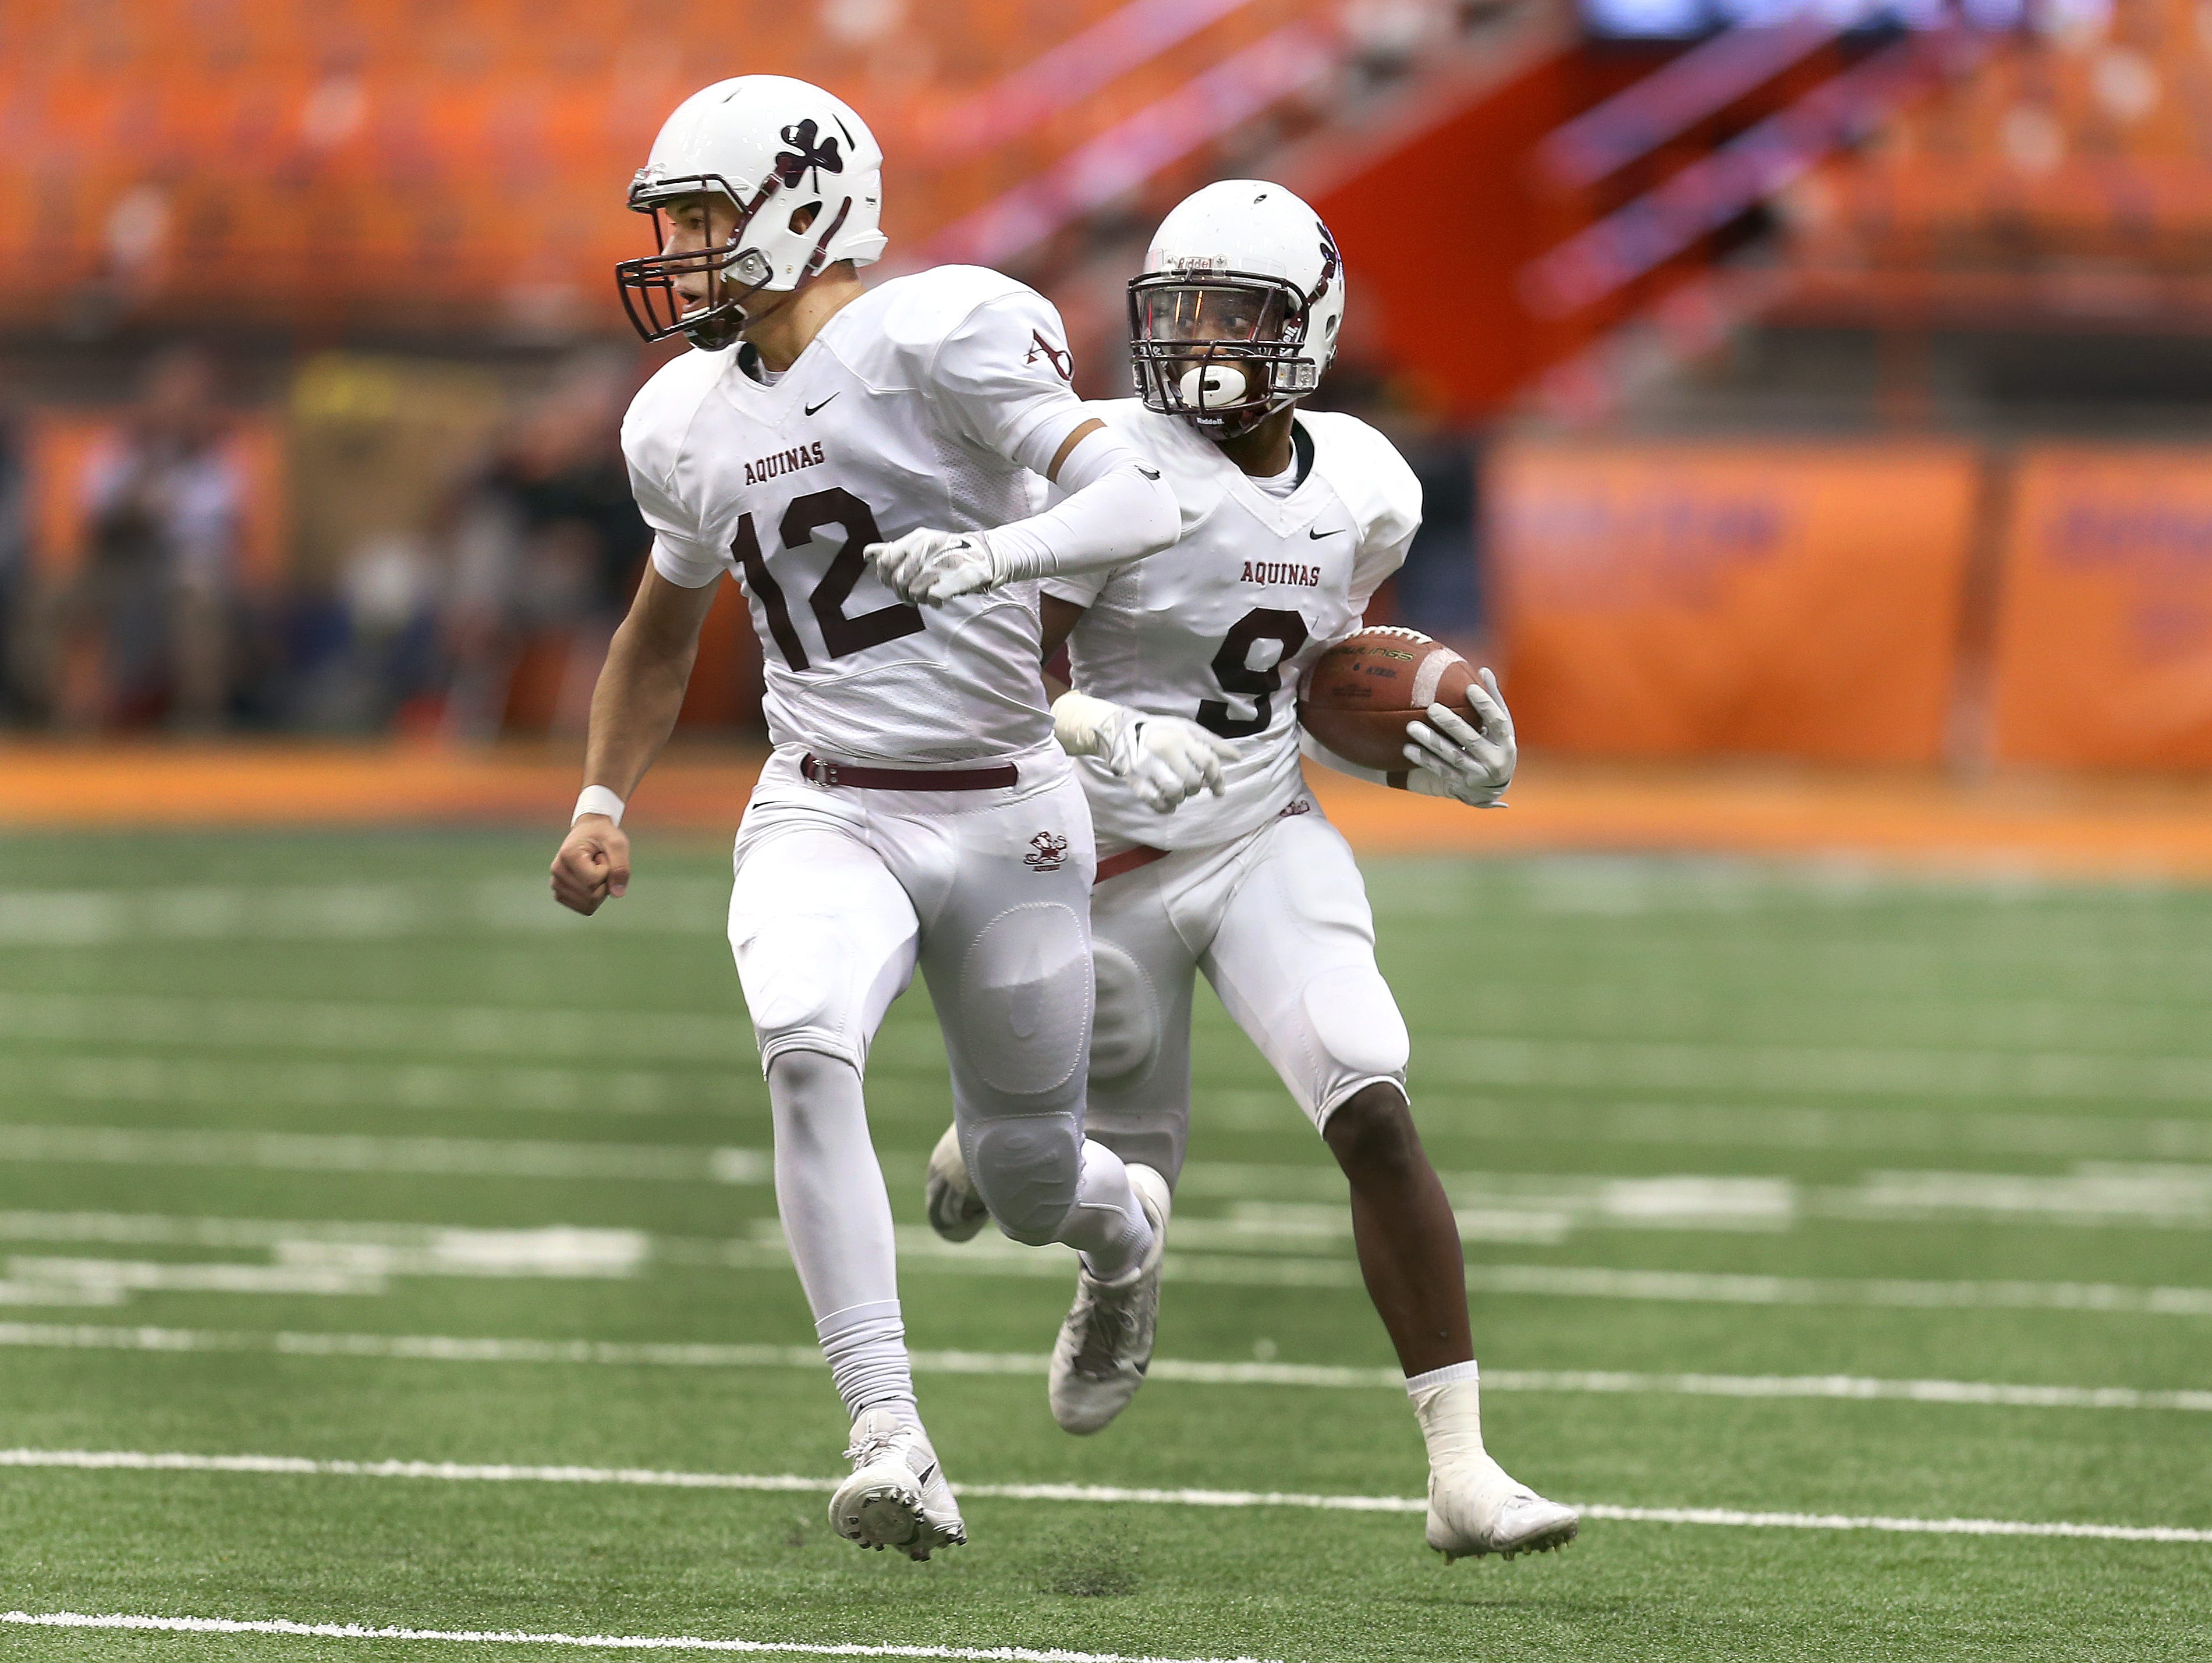 Aquinas quarterback Jake Zembiec (12) looks to block after receiver Earnest Edwards reversed direction after a catch in Sunday's title game.